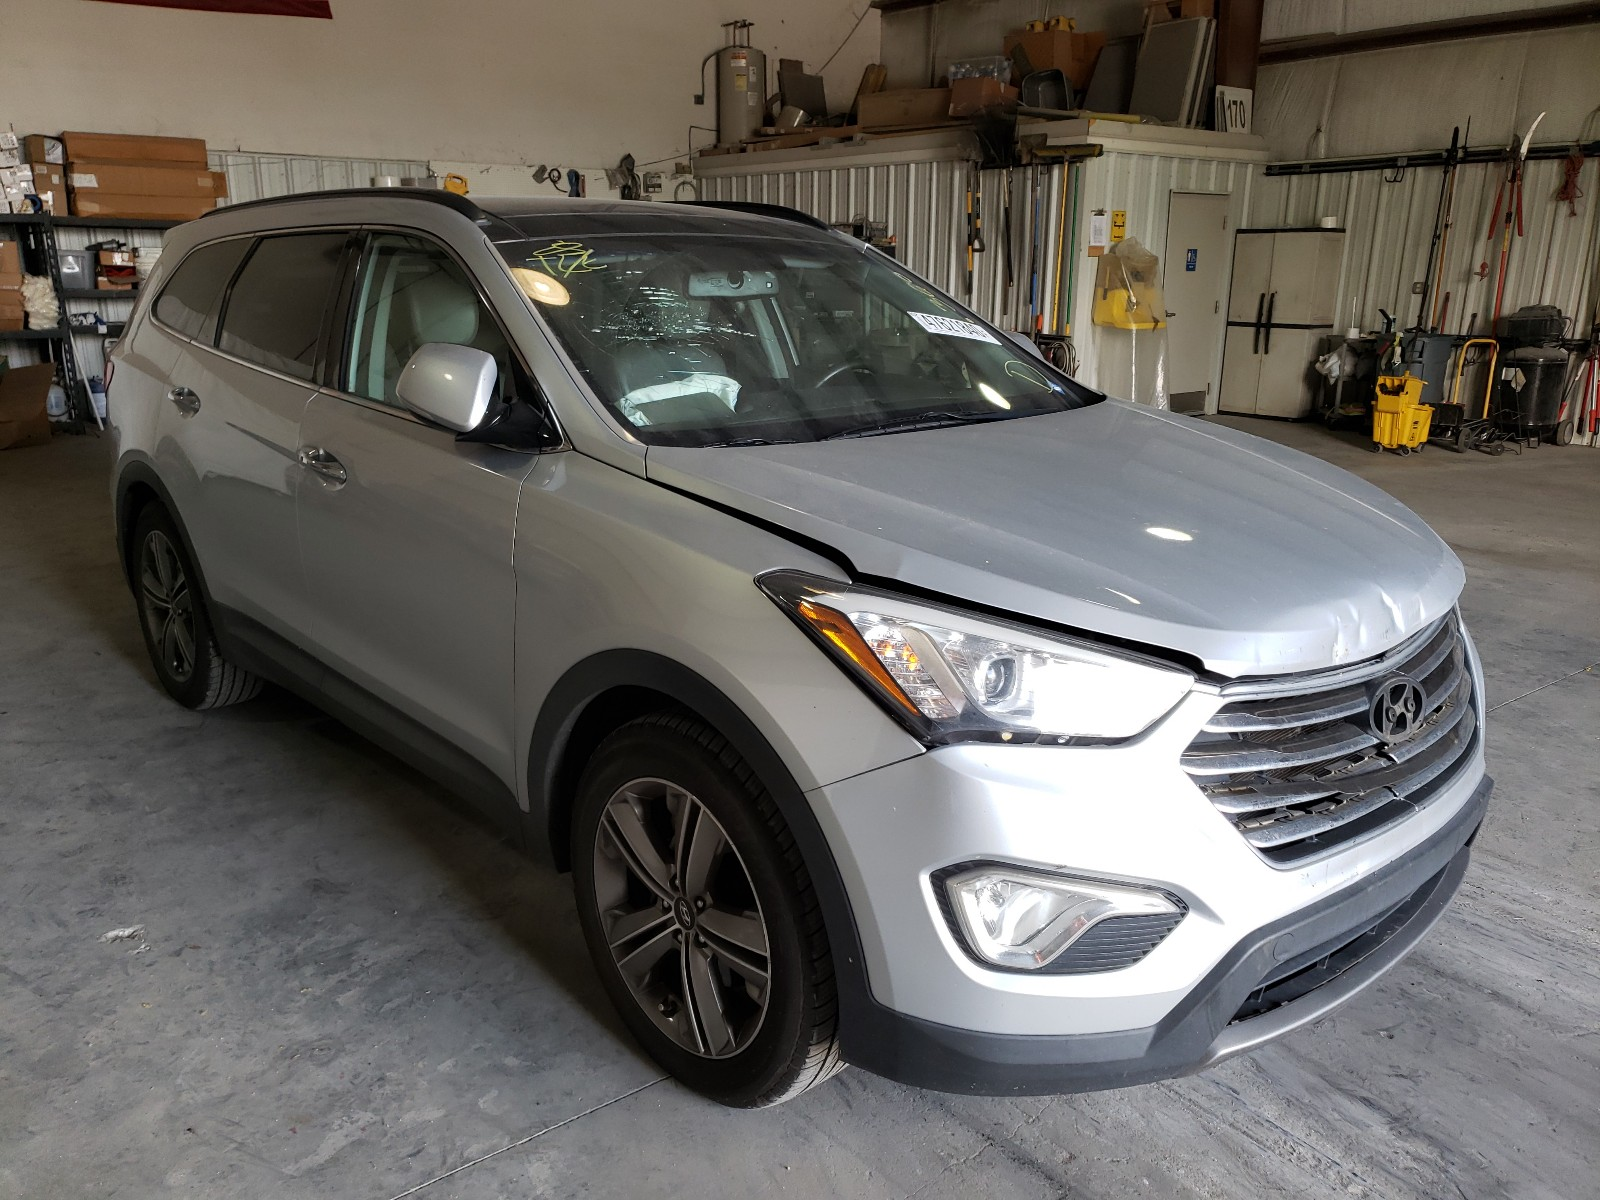 2013 hyundai santa fe l for sale at copart savannah ga lot 47621840 salvagereseller com salvagereseller com